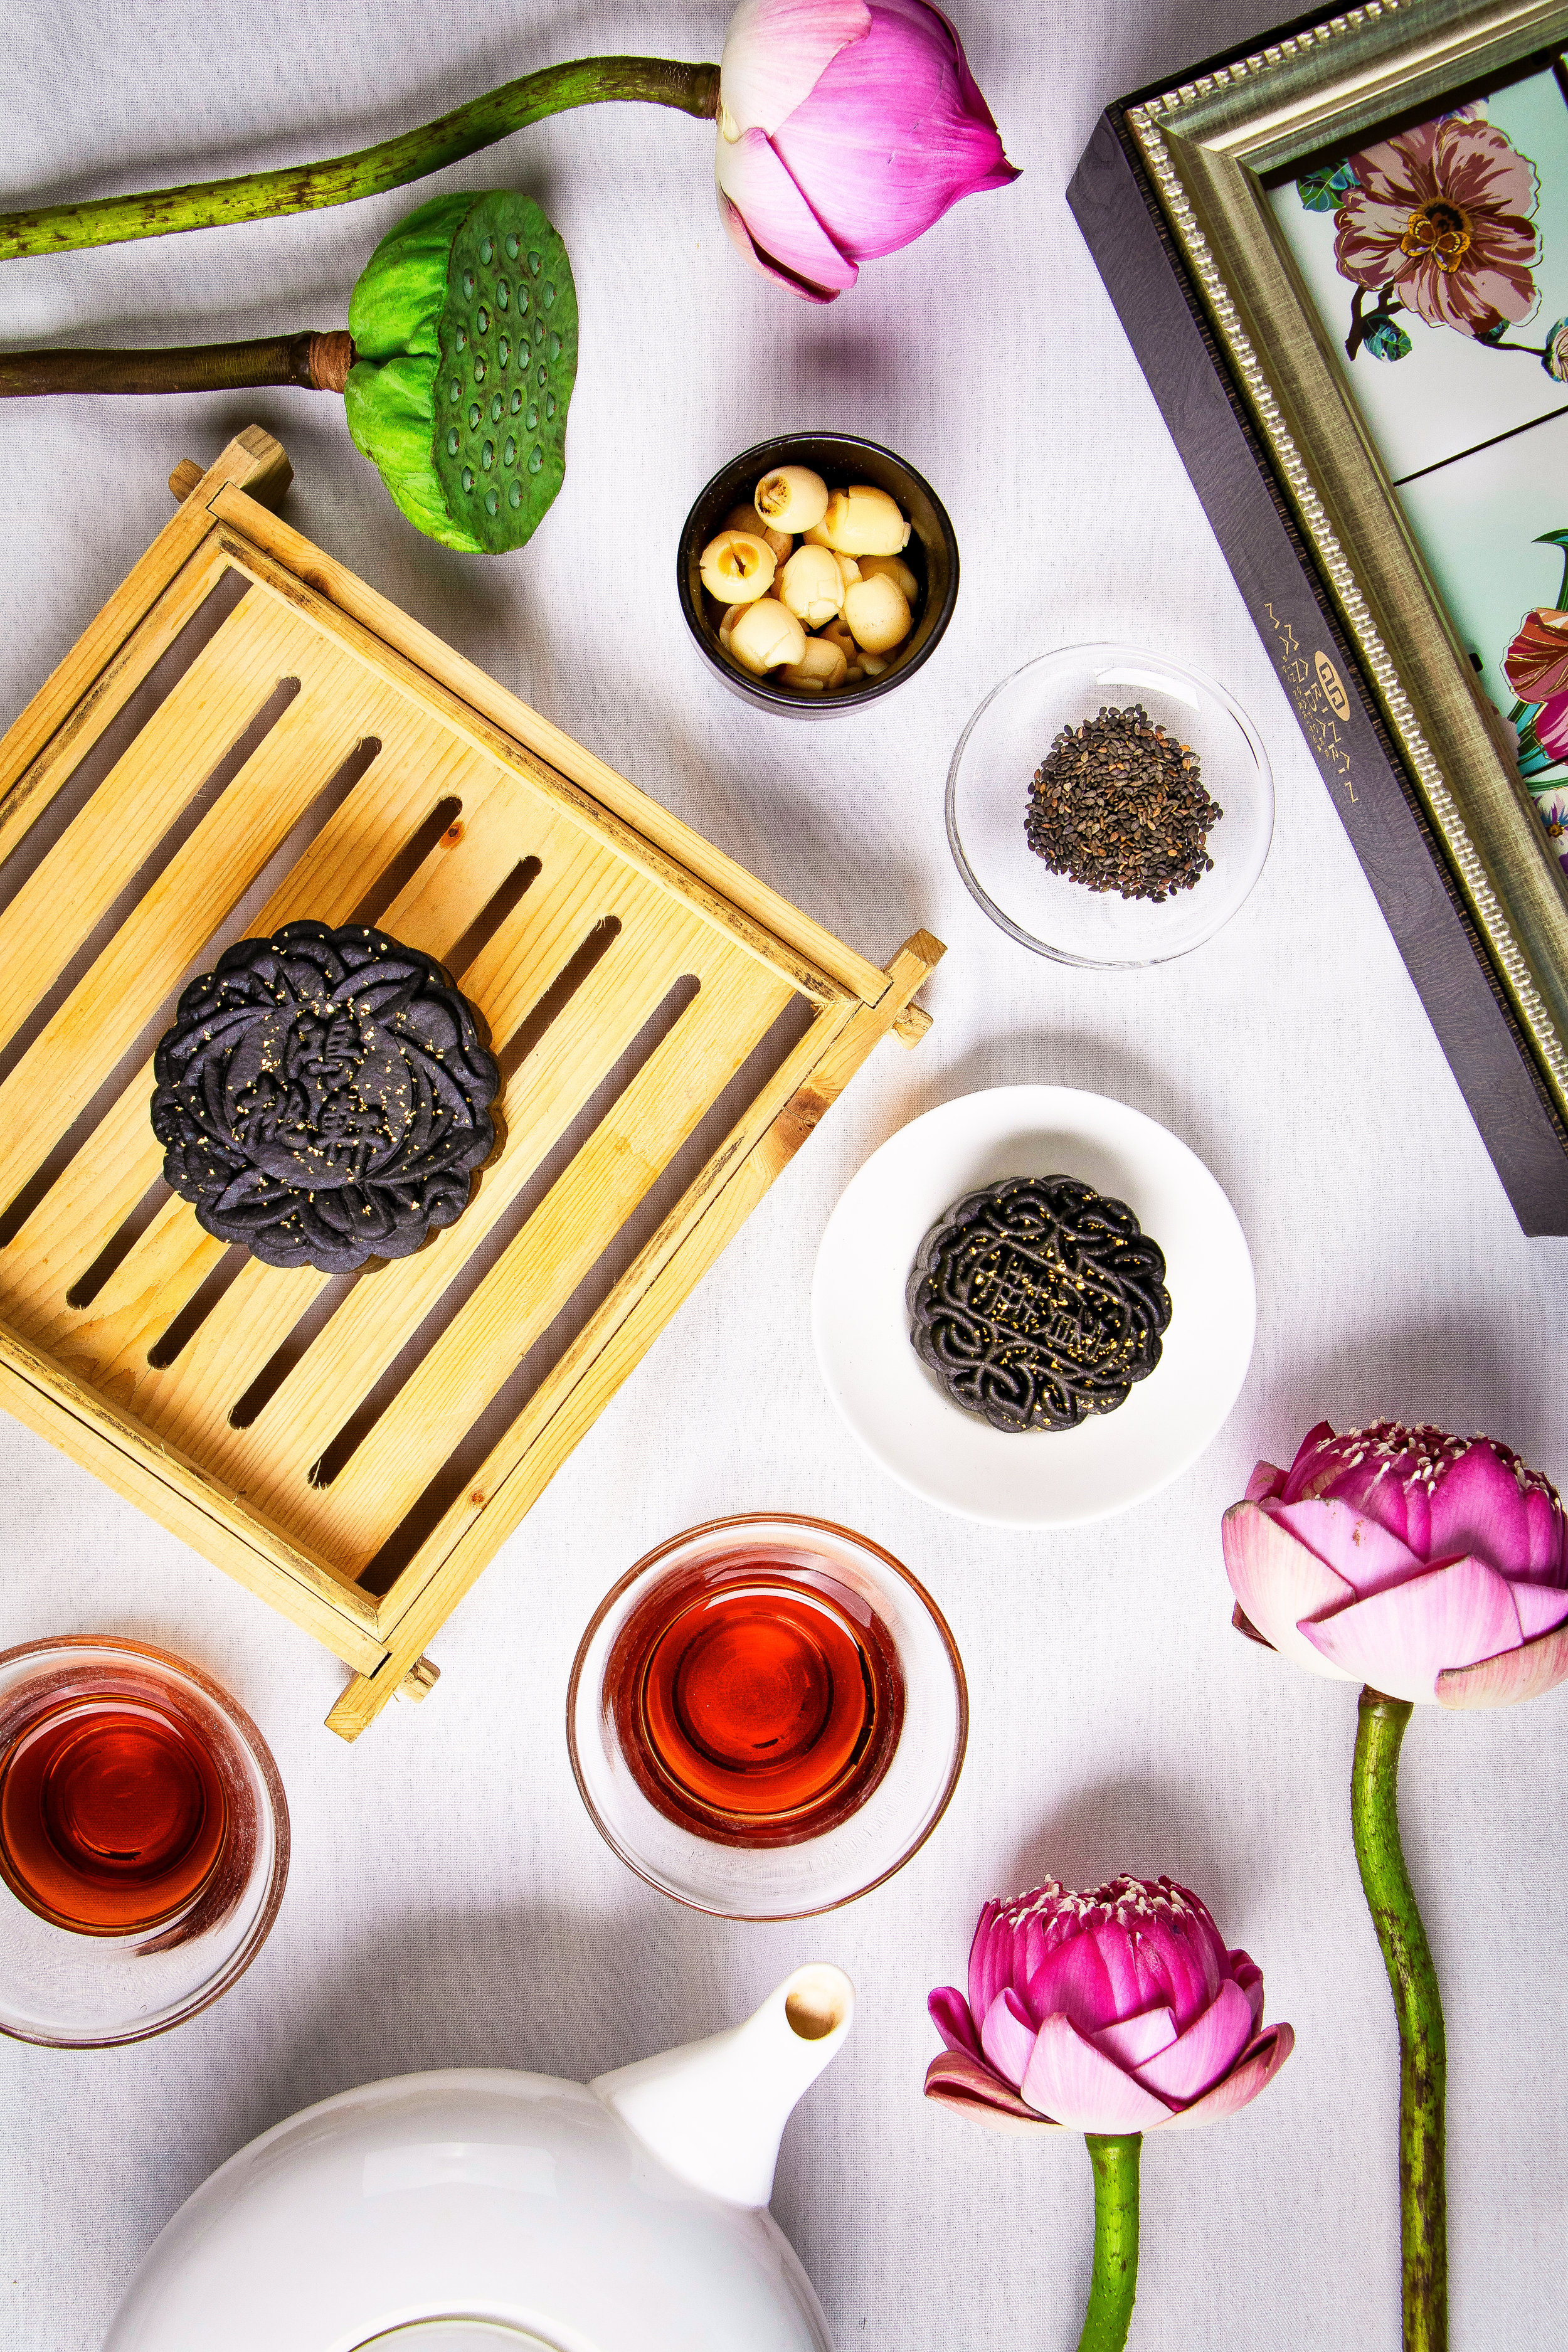 Charcoal Black Sesame Paste with Melon Seeds and Gold Dust -1.jpg